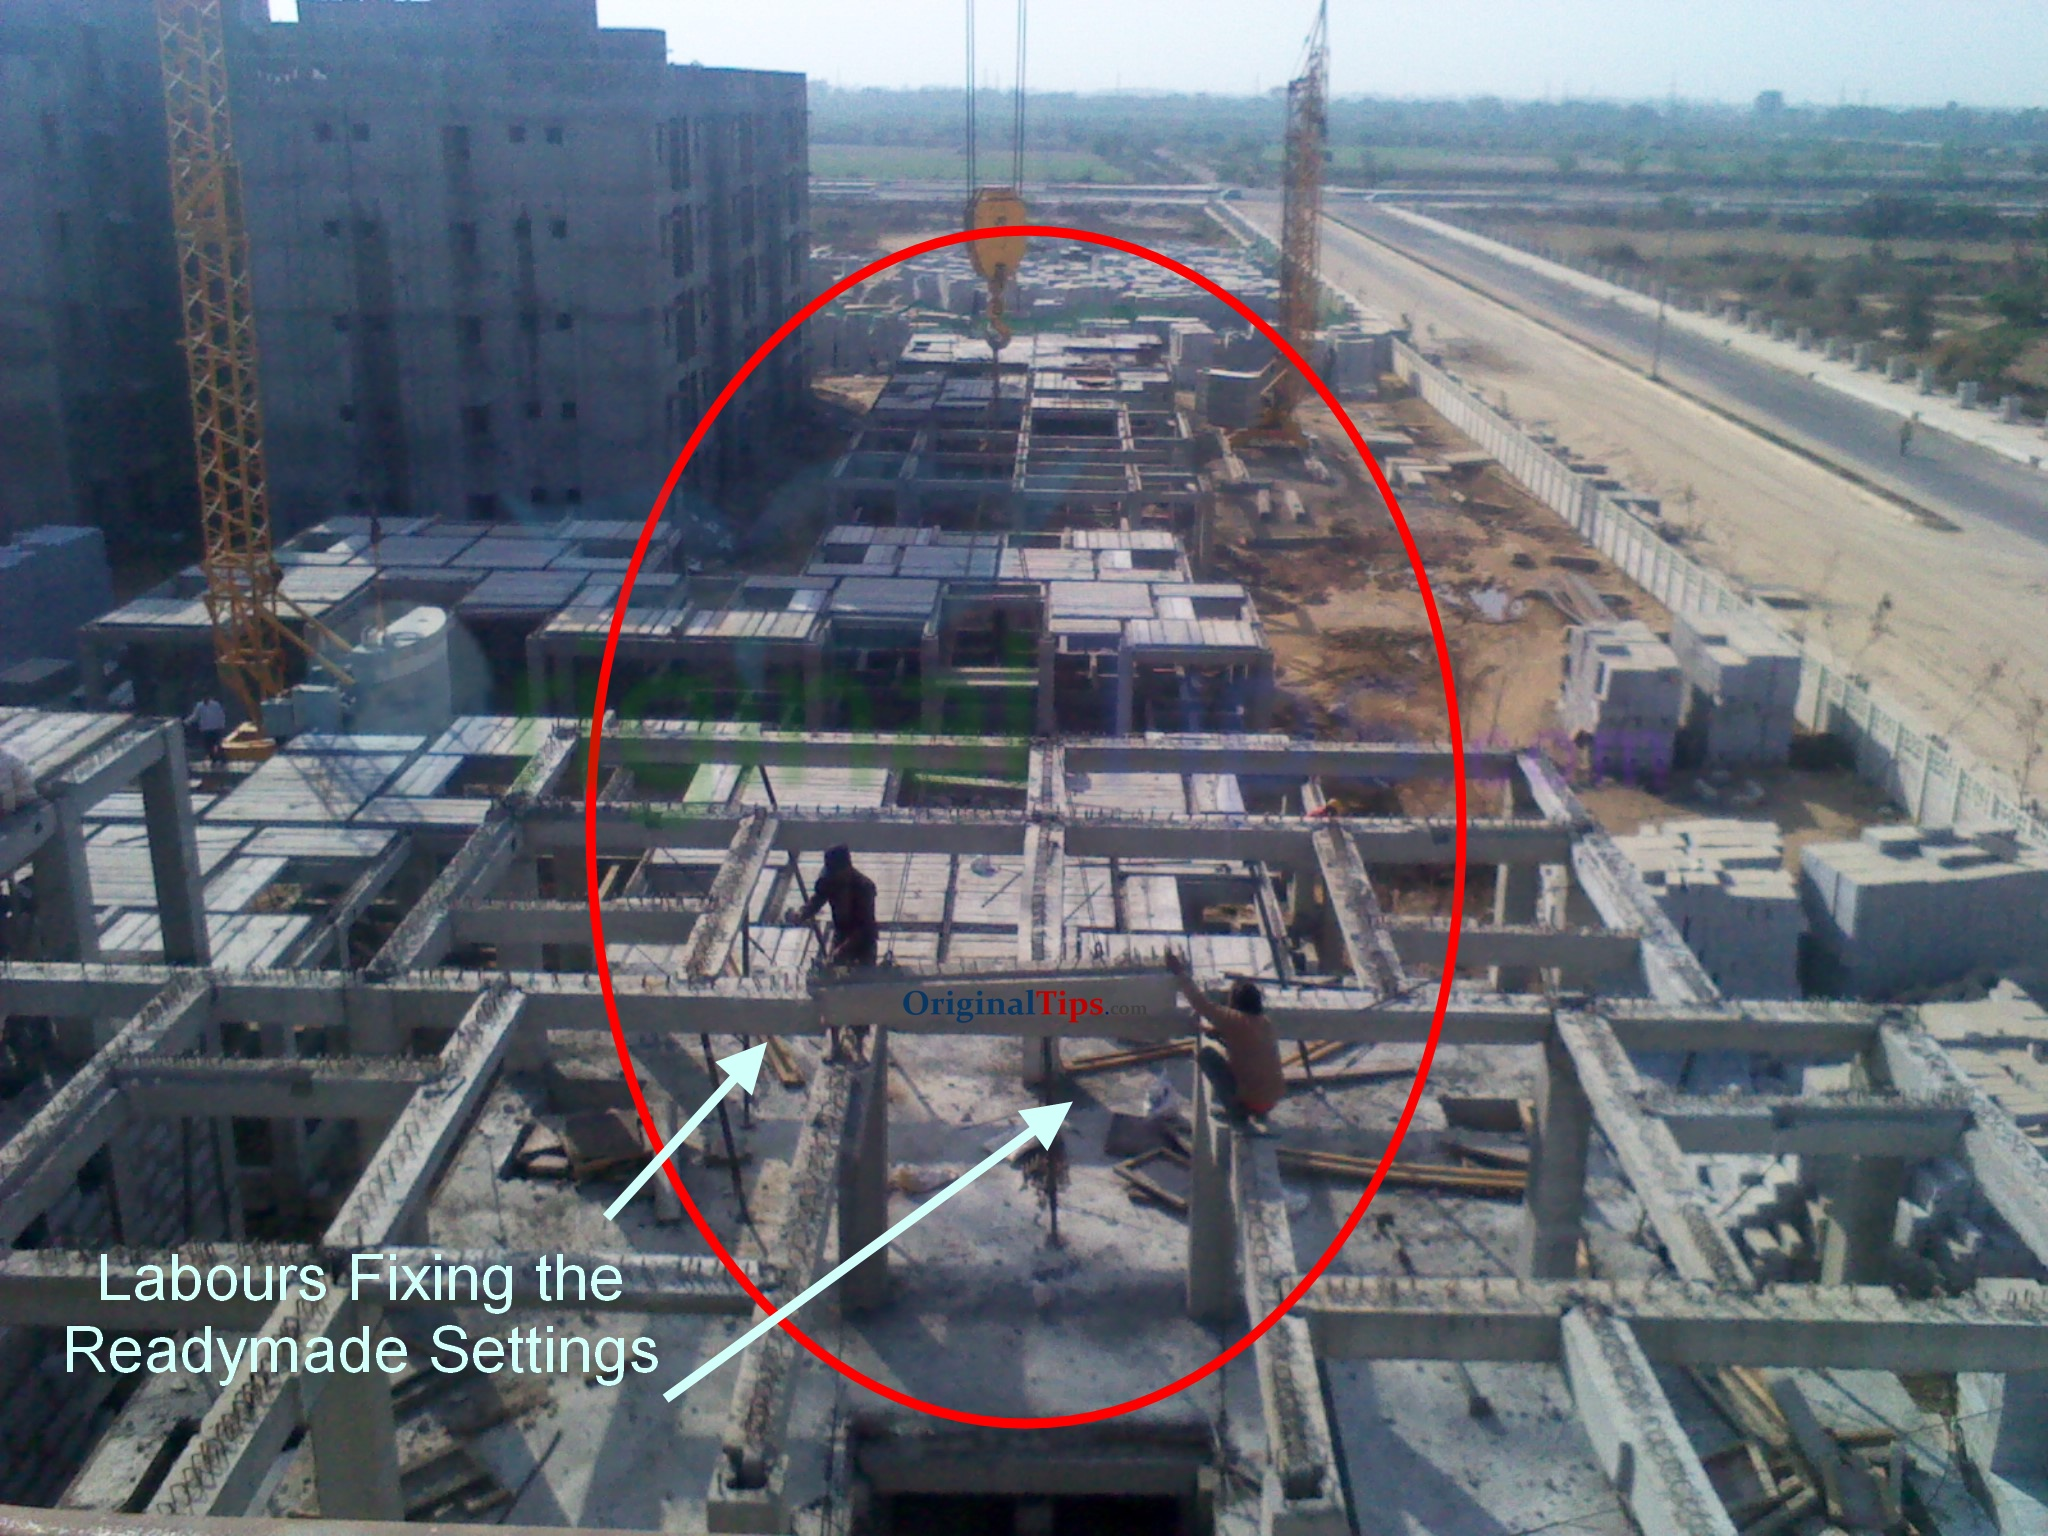 Actual Photo of Prefabricated DDA EWS Flats in Pocket 8, Sector 23B